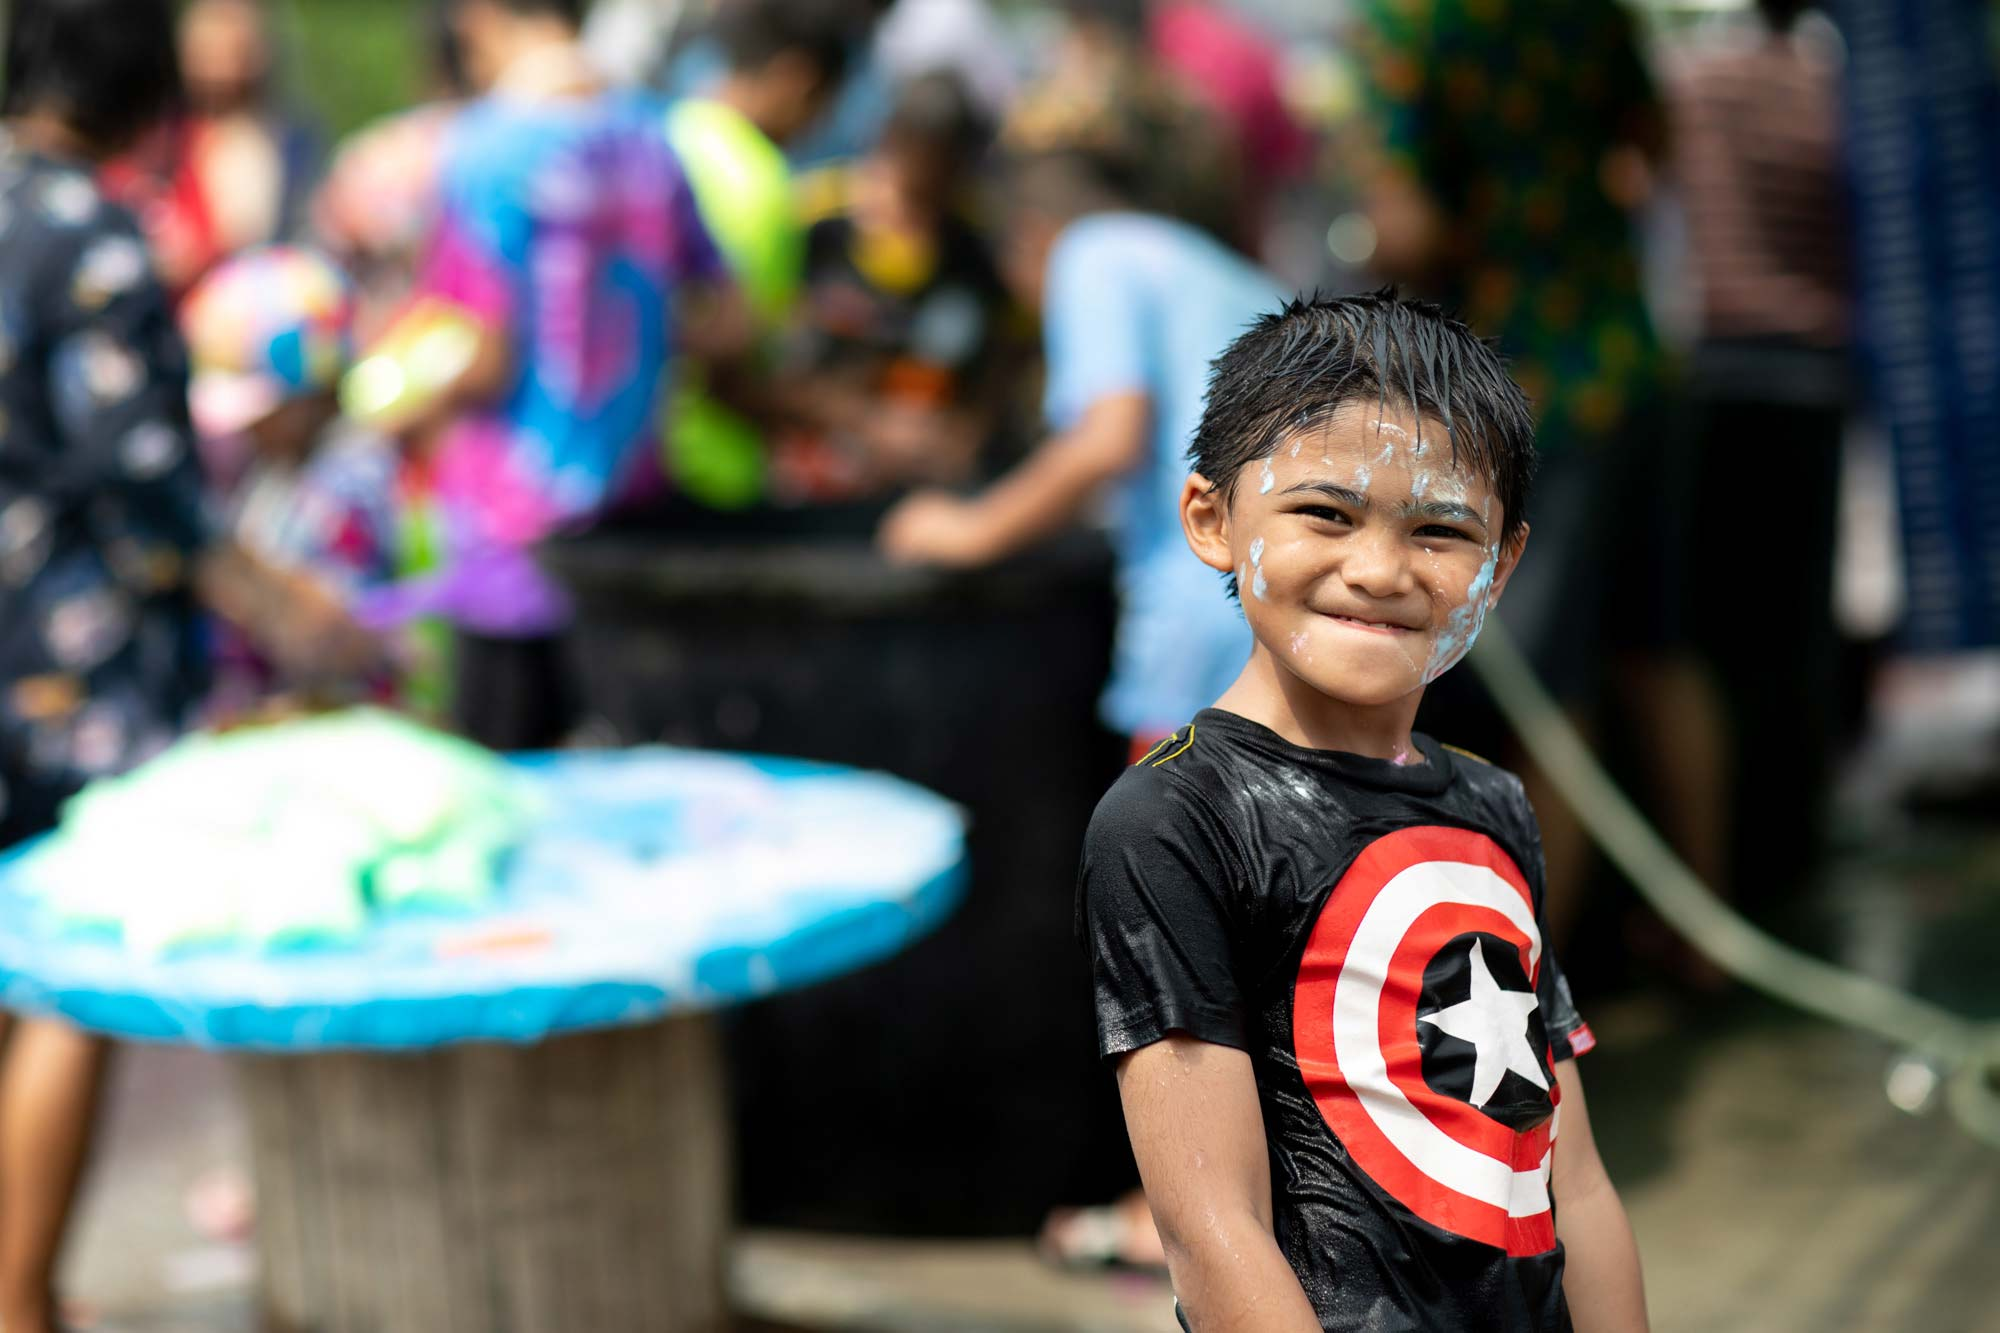 Smiling Boy with painted face | Songkran Thailand | Travel Phogoraphy | Portrait Photography